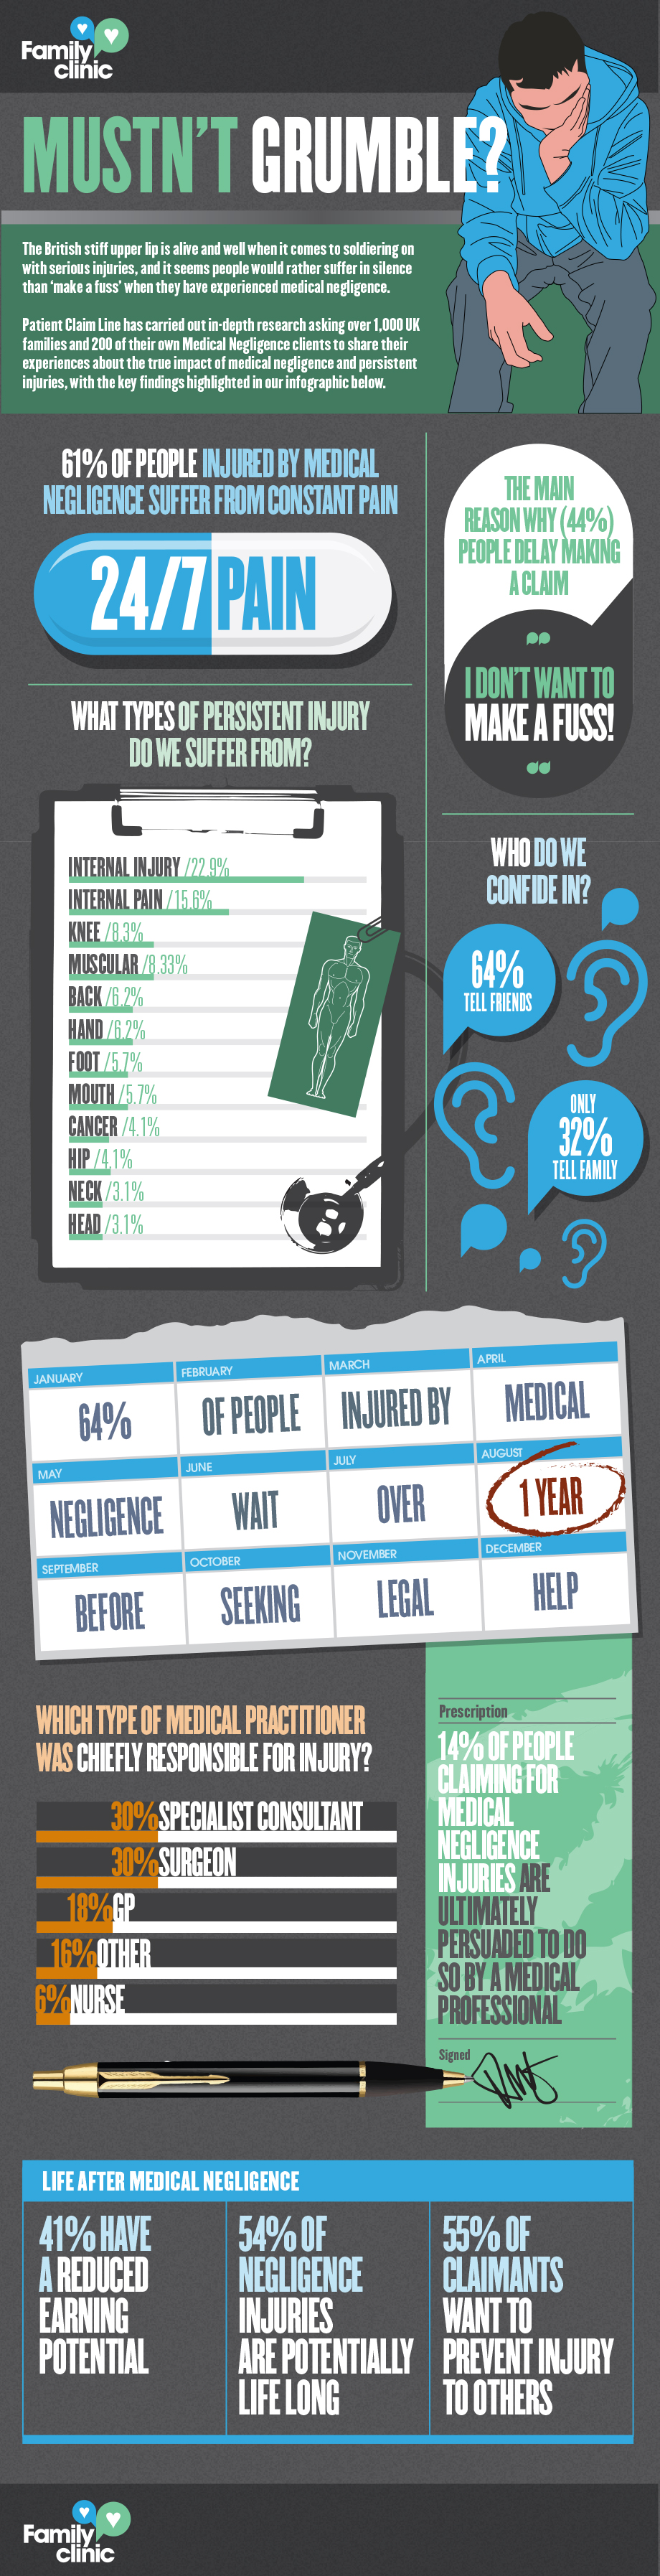 mustnt-grumble-infographic